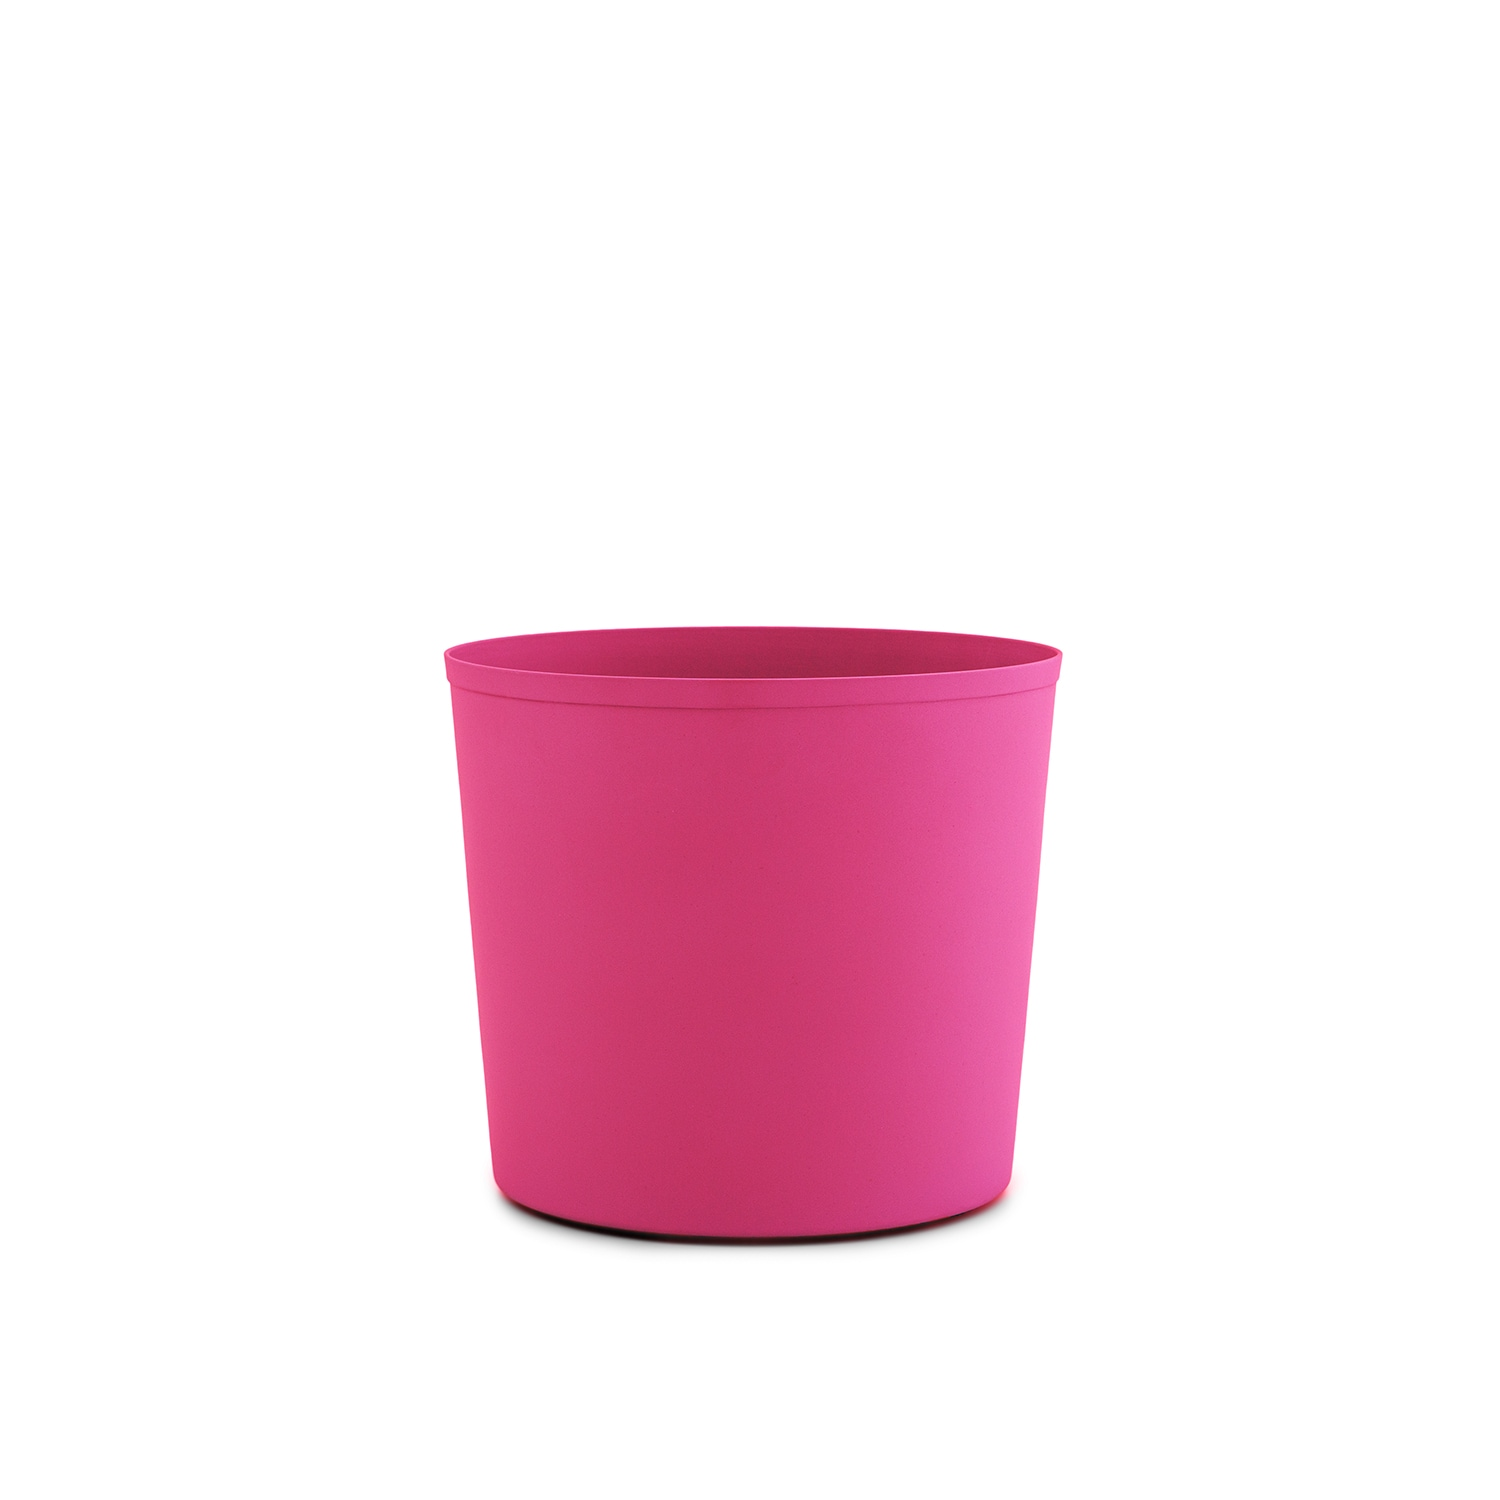 Trio Innerpot Medium Pink Square